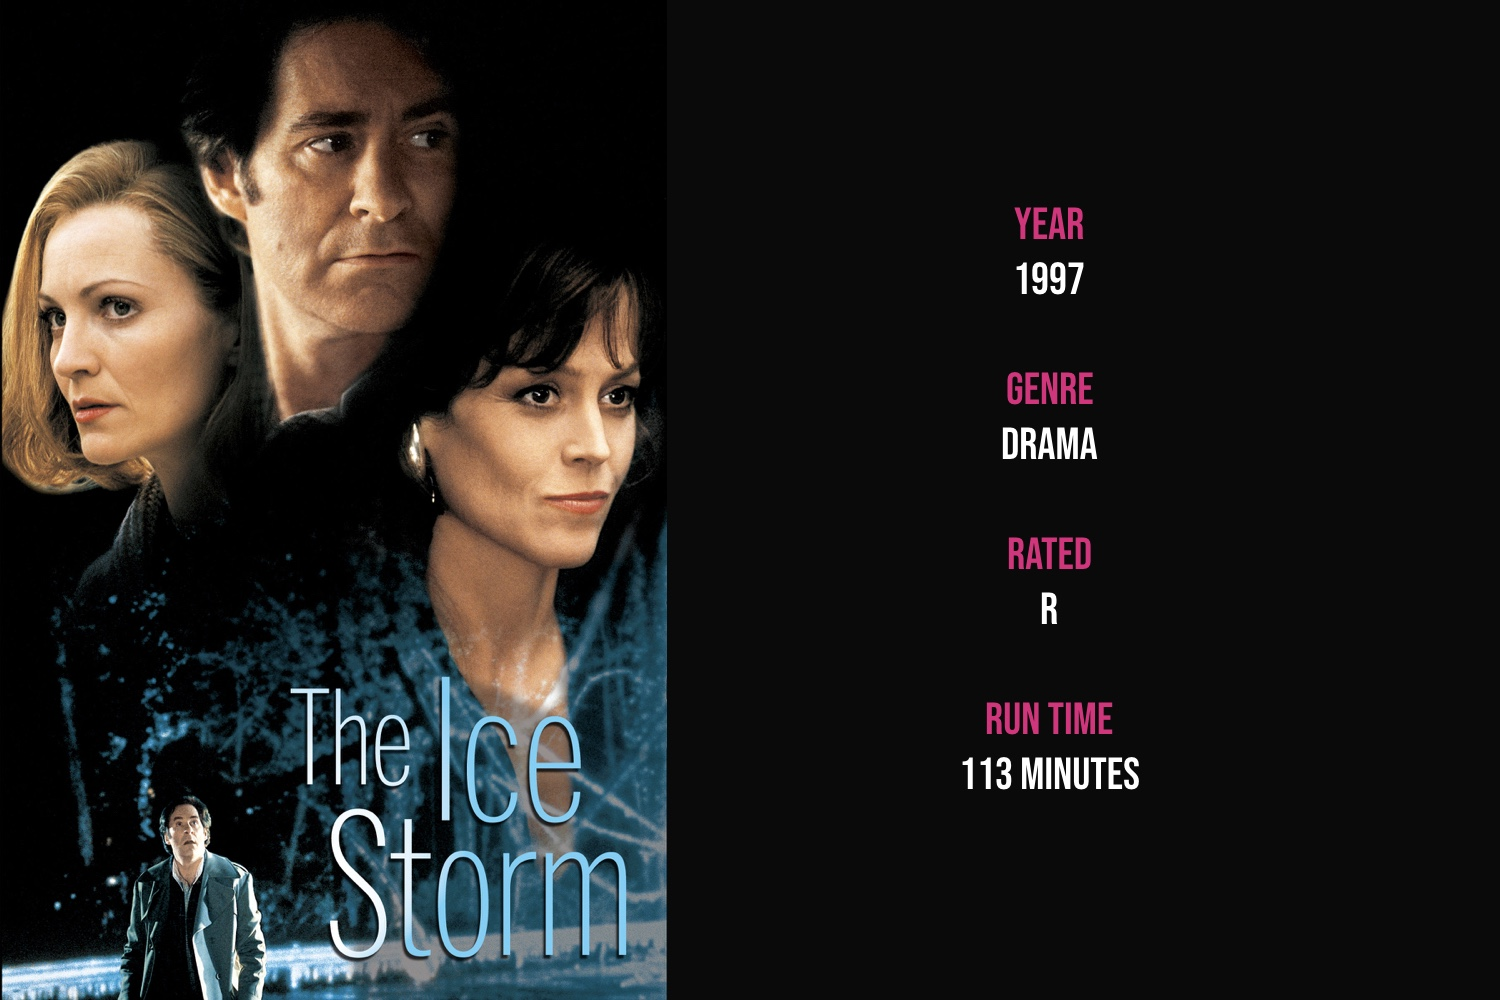 The Ice Storm - Set during Thanksgiving weekend in 1973 suburban Connecticut, two dysfunctional upper-class families experiment with casual sex, alcohol and drugs to escape the social changes of the early 1970s.iTunes | Amazon